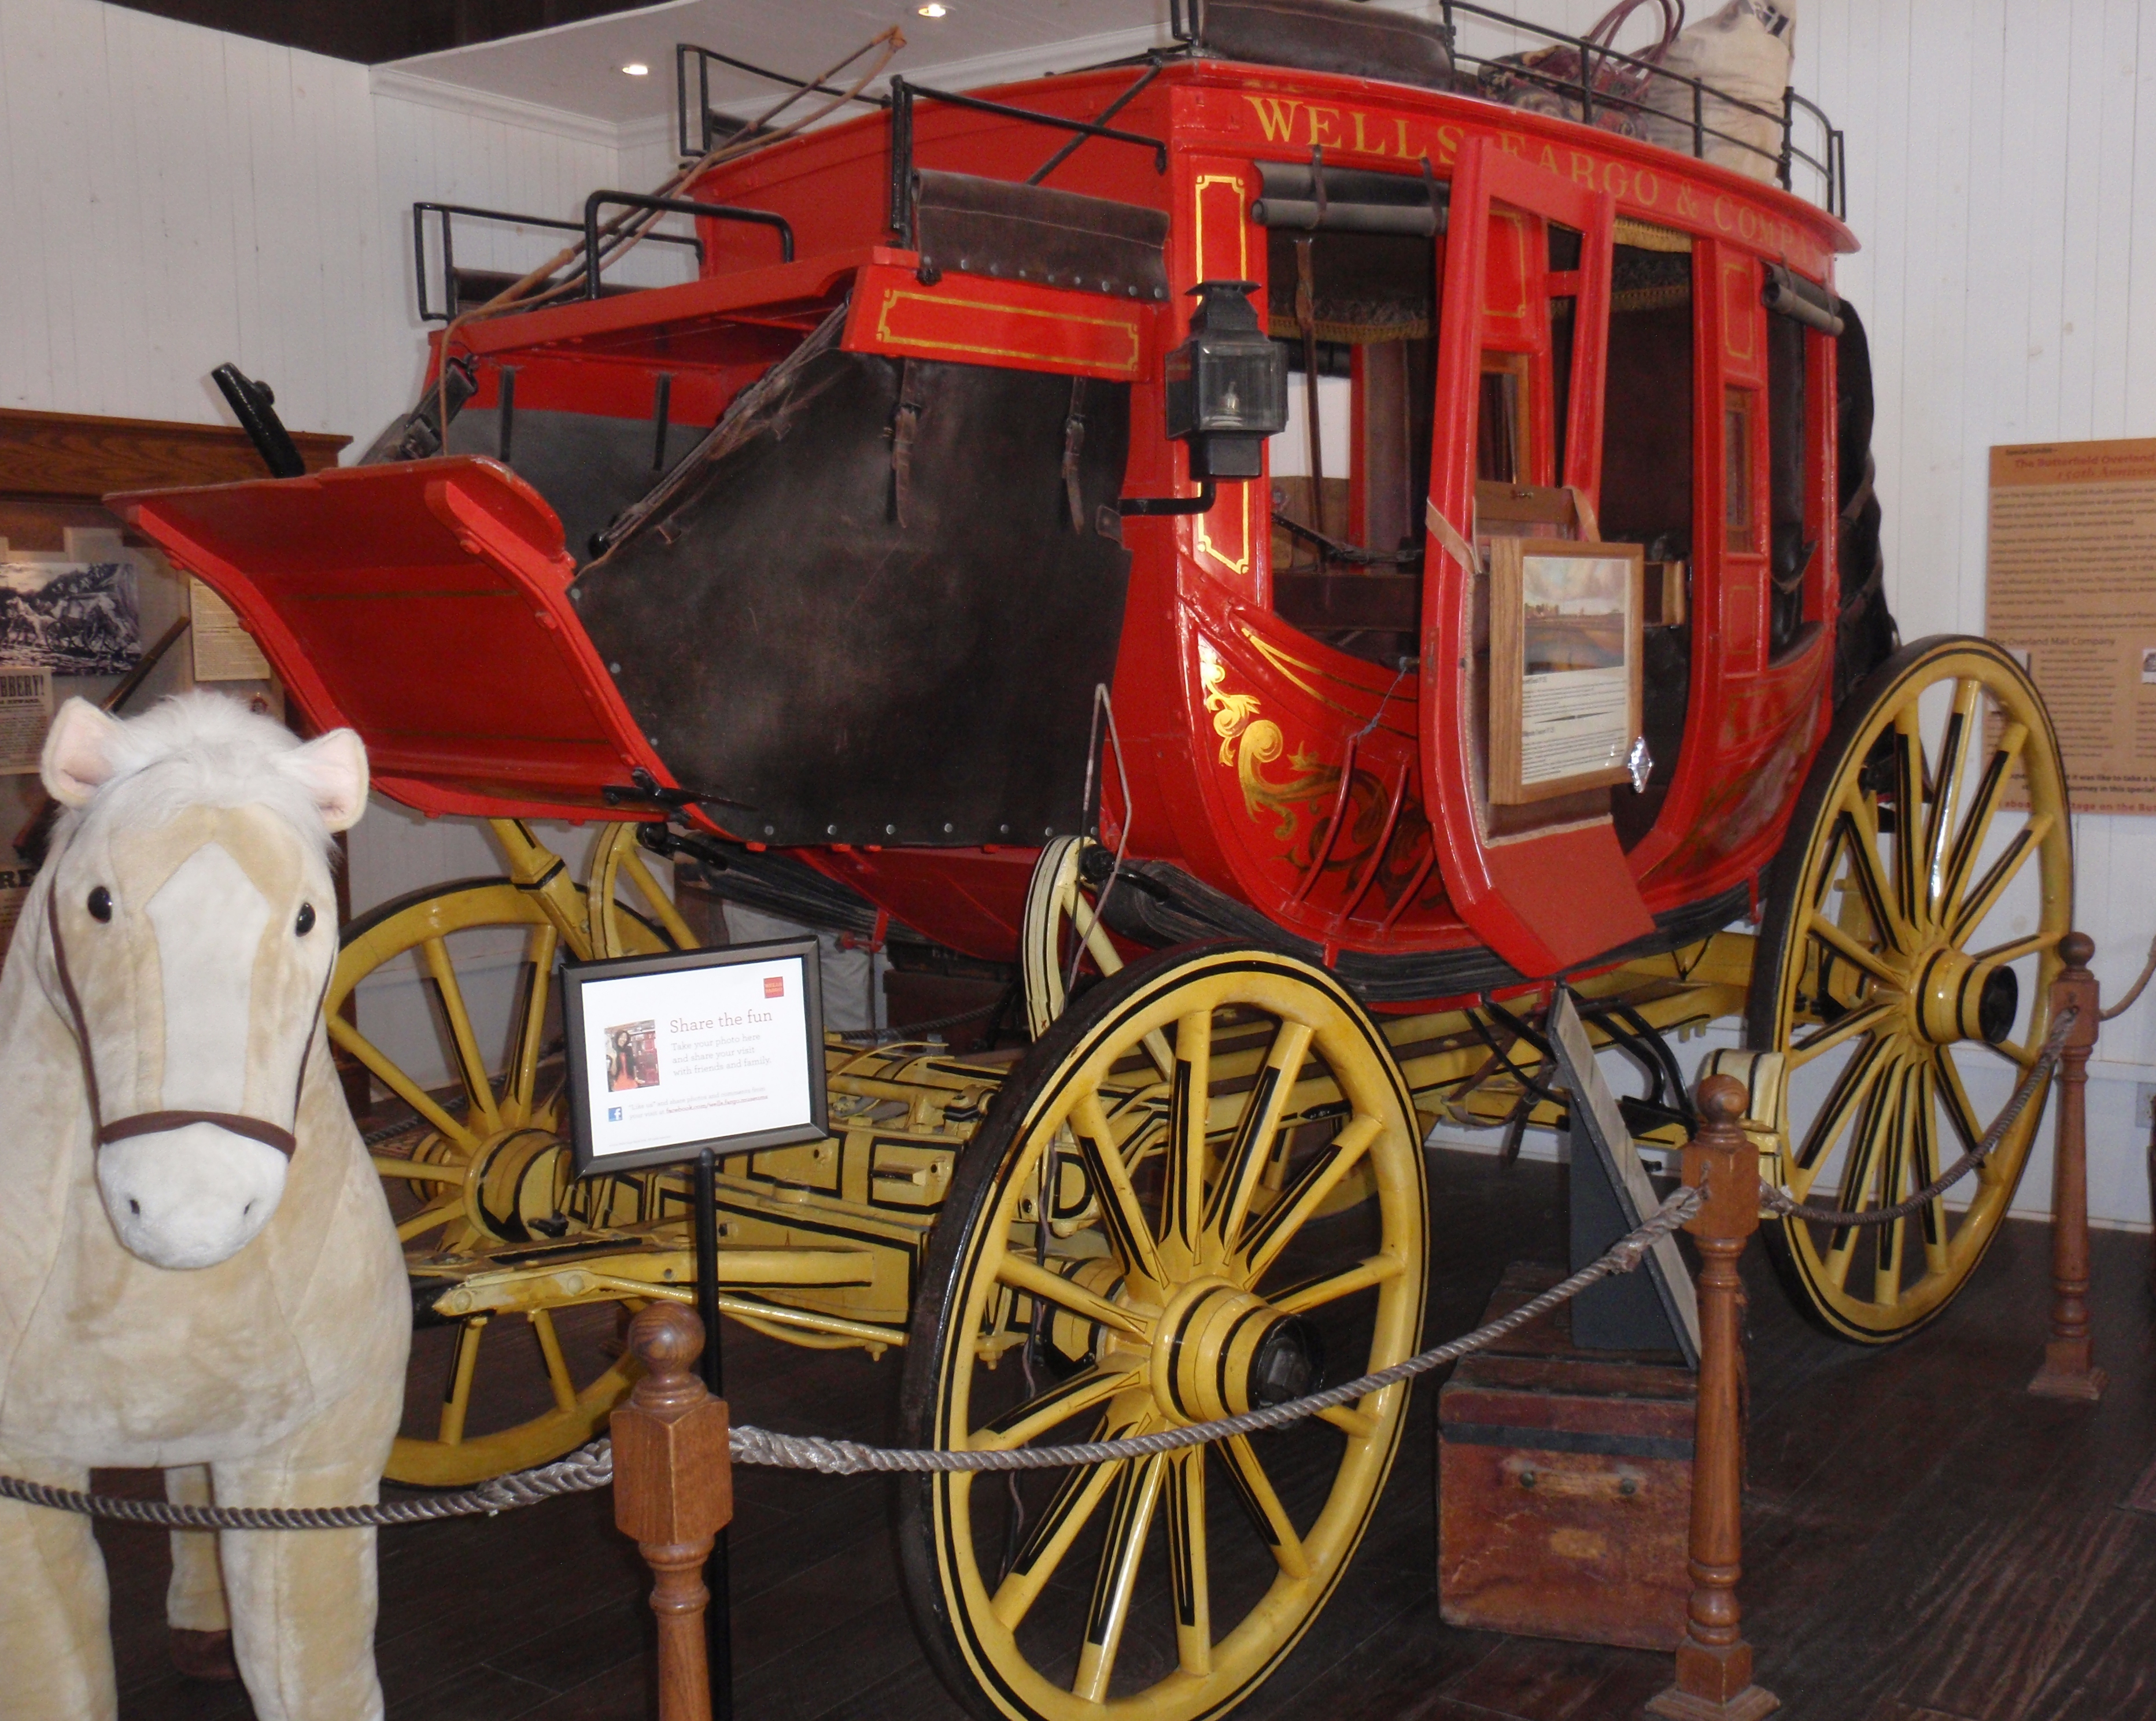 Wells Fargo museum in San Diego's Old Town State Park. Photo by James Ulvog.